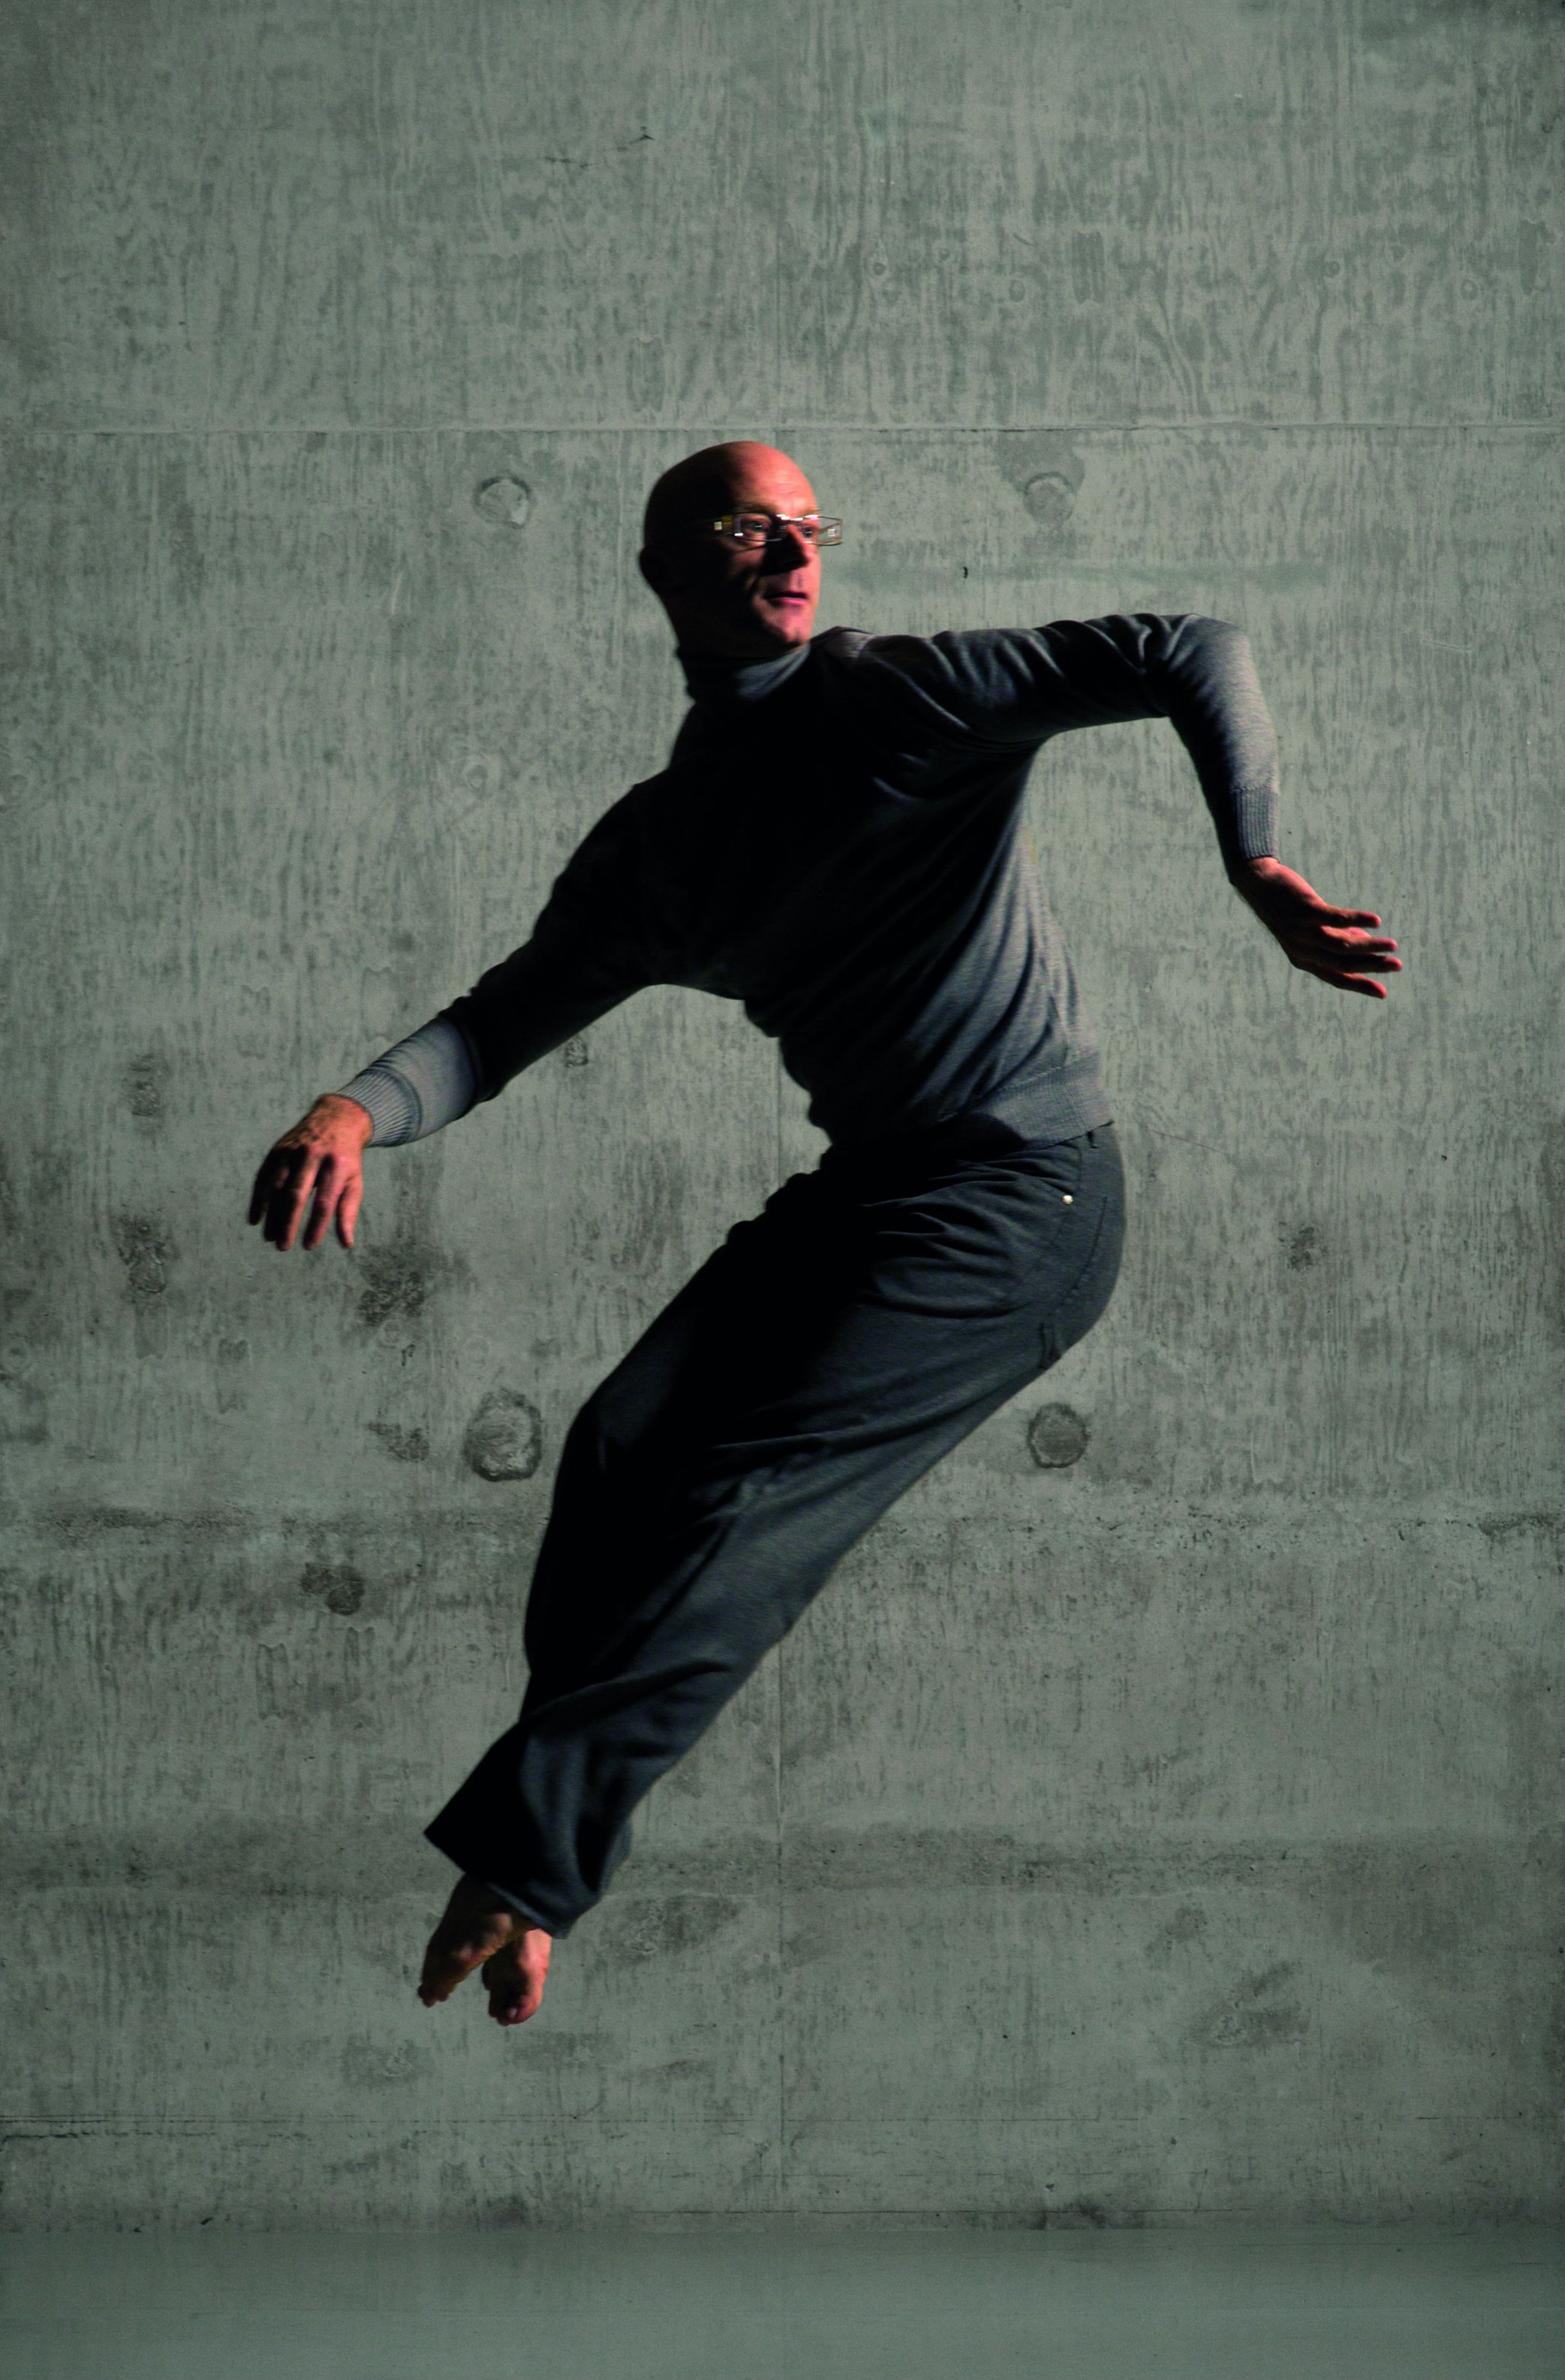 BIG INTERVIEW: David Waring Artistic Director At The Transitions Dance Company